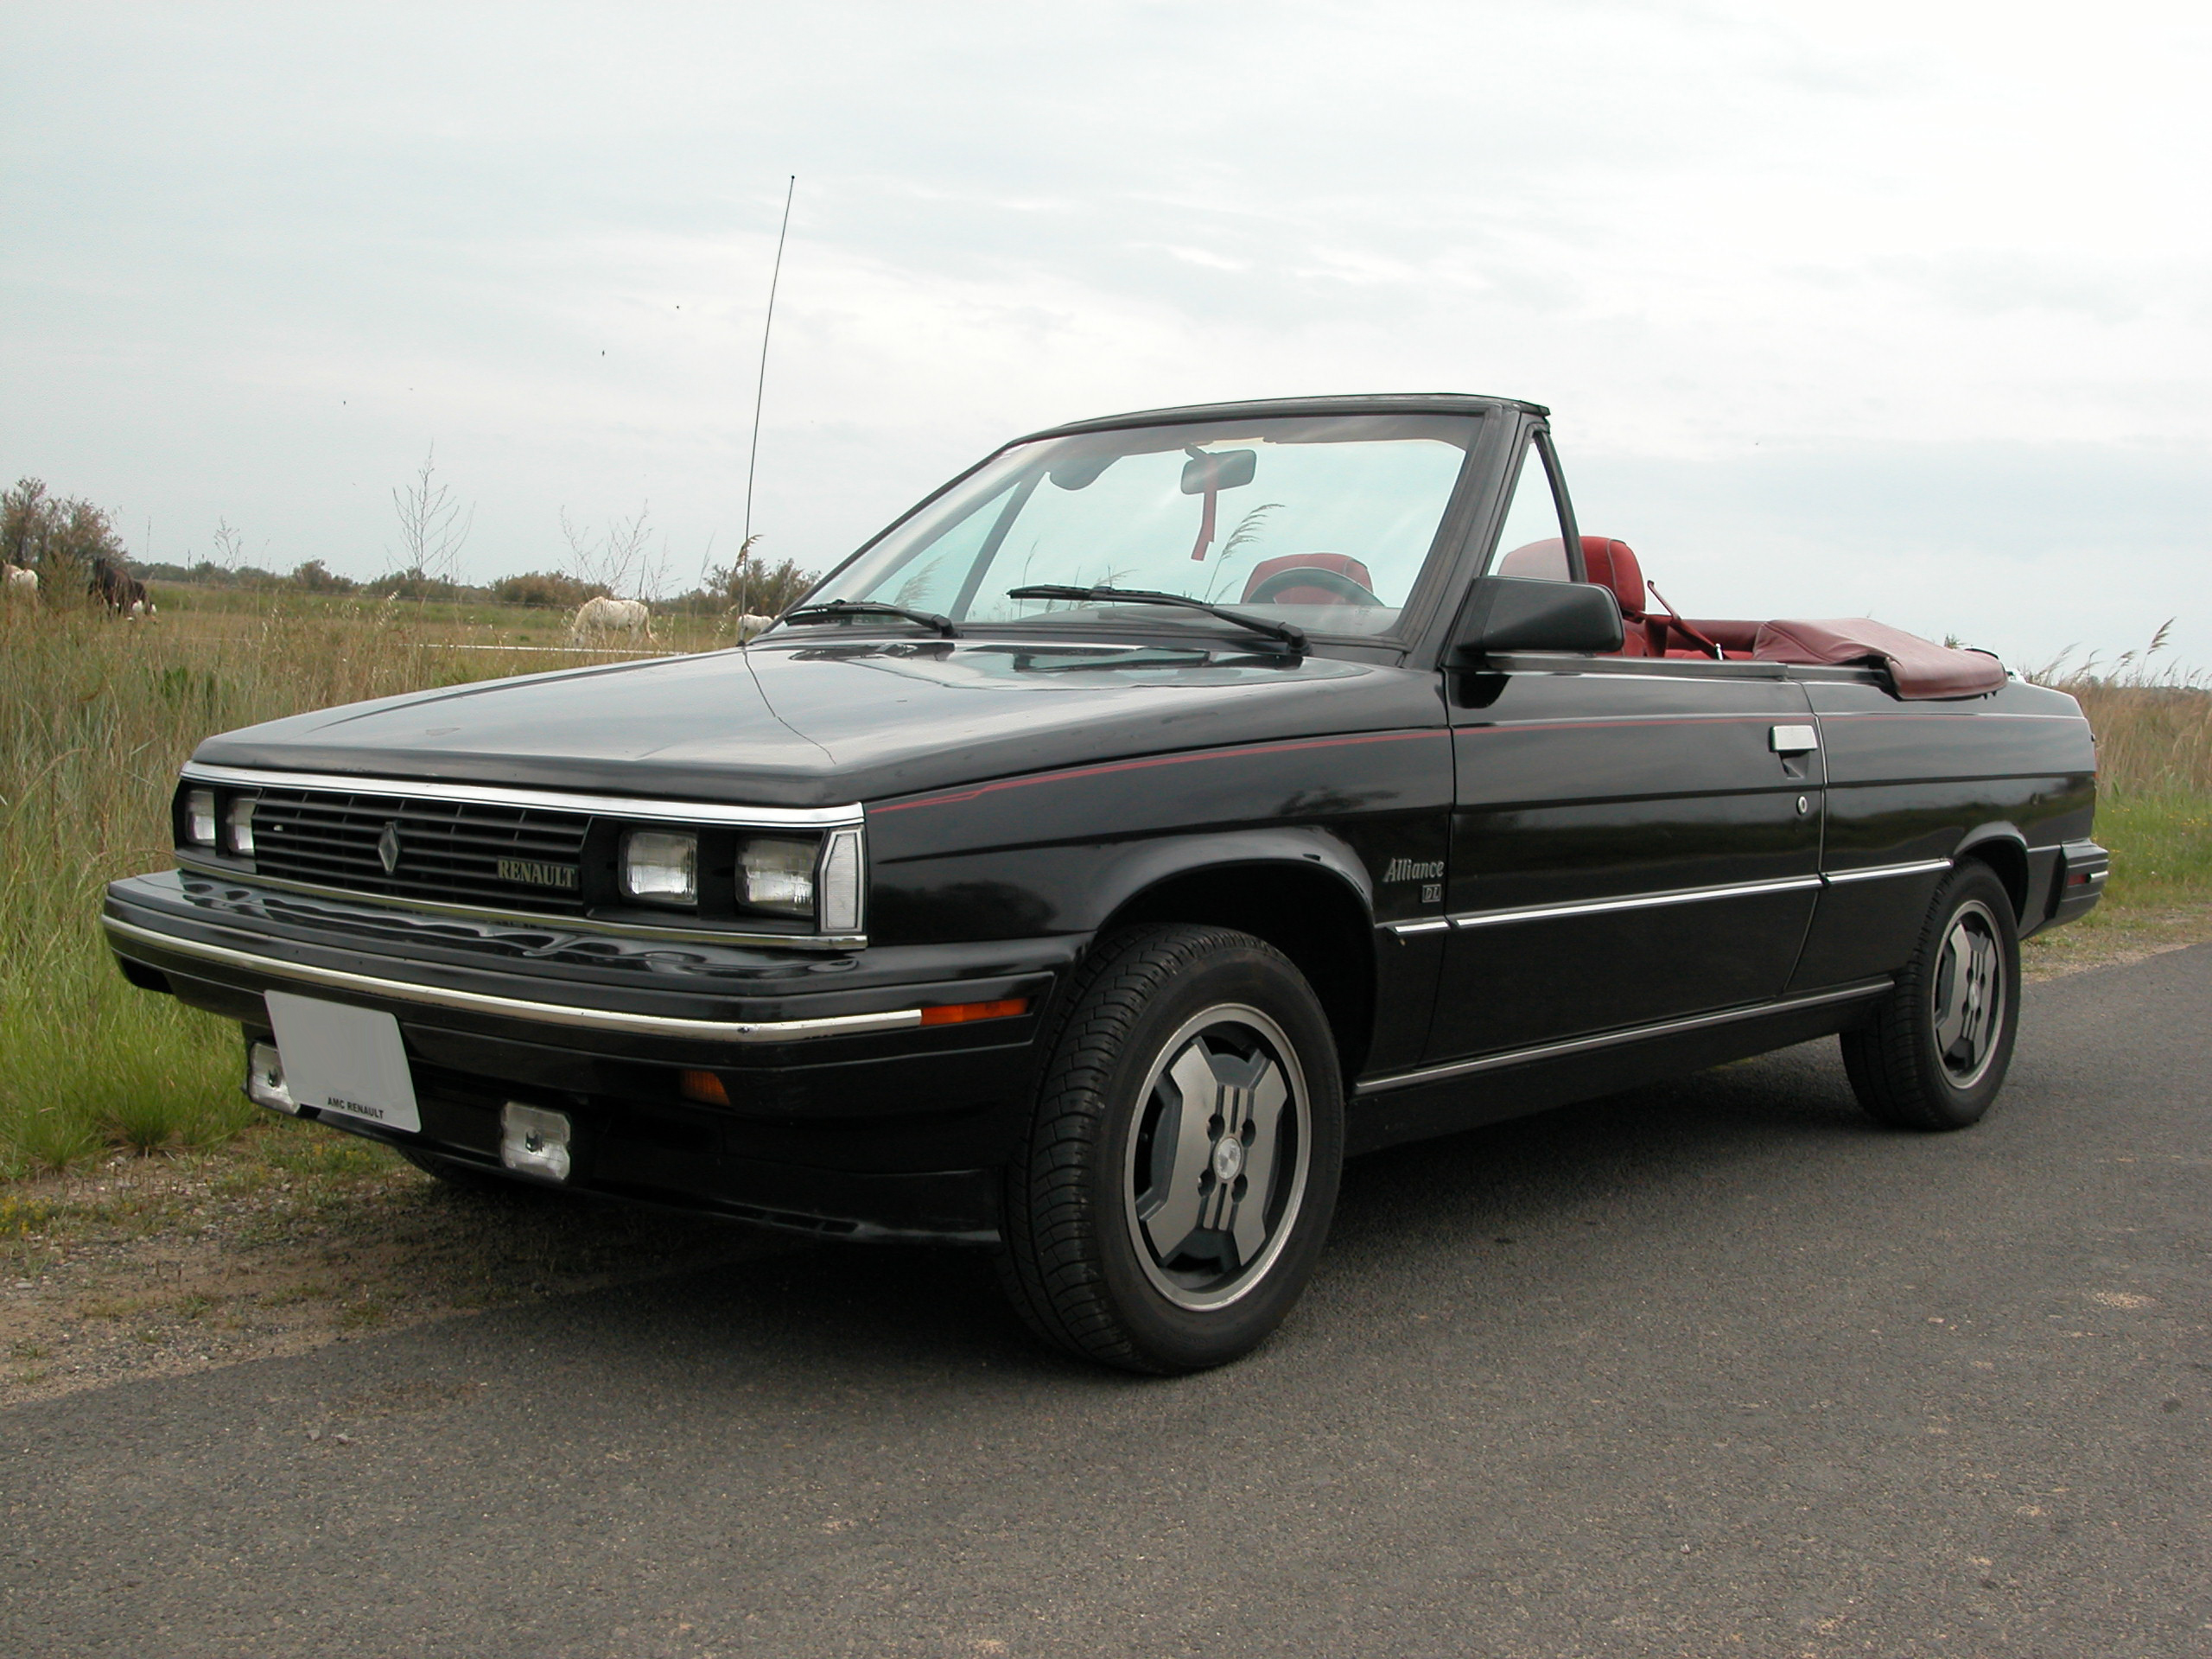 Photo of Renault Alliance Convertible